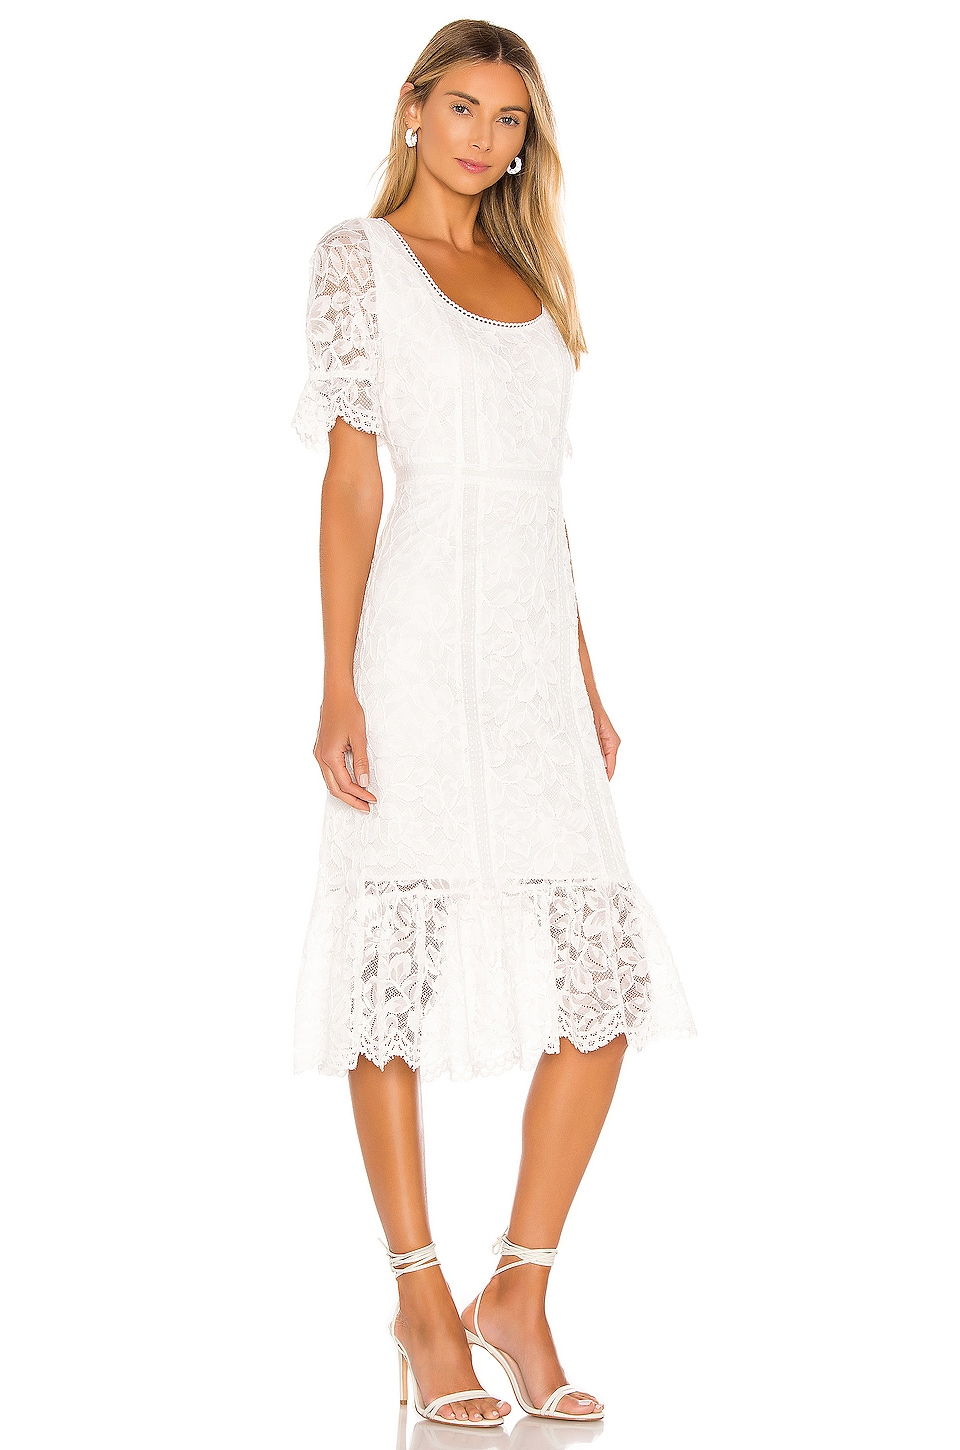 Just In Lace Midi Dress, view 2, click to view large image.